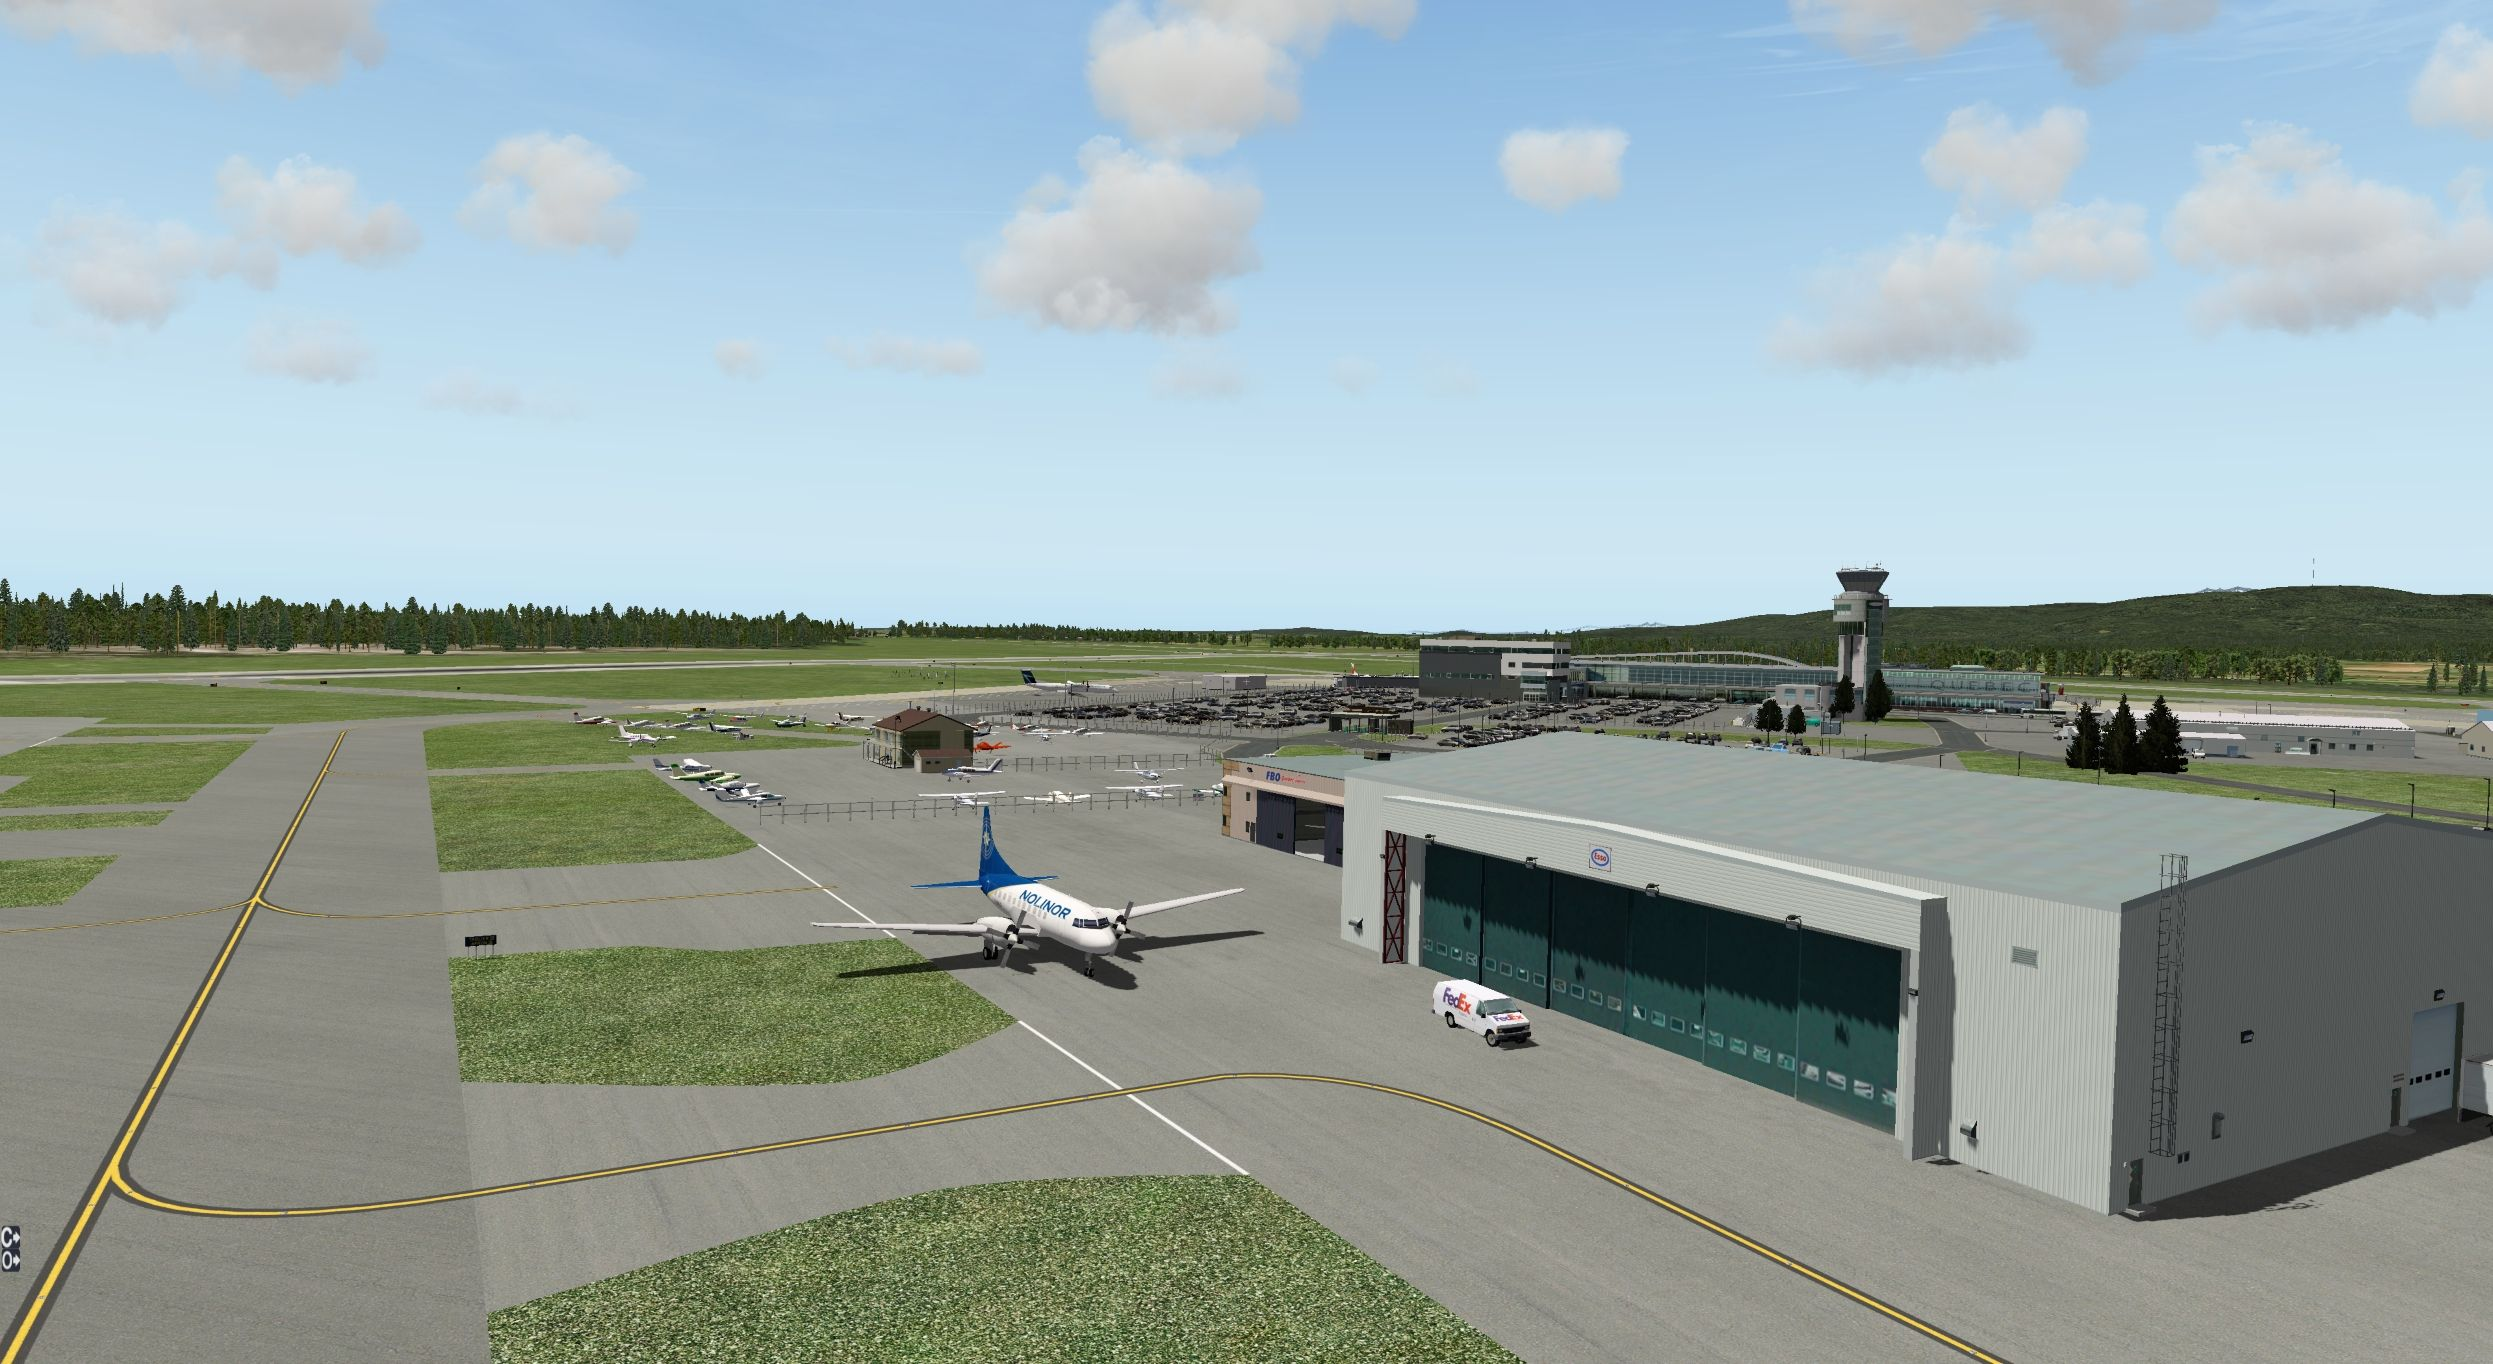 CYQB Quebec City Jean Lesage International Airport - Scenery